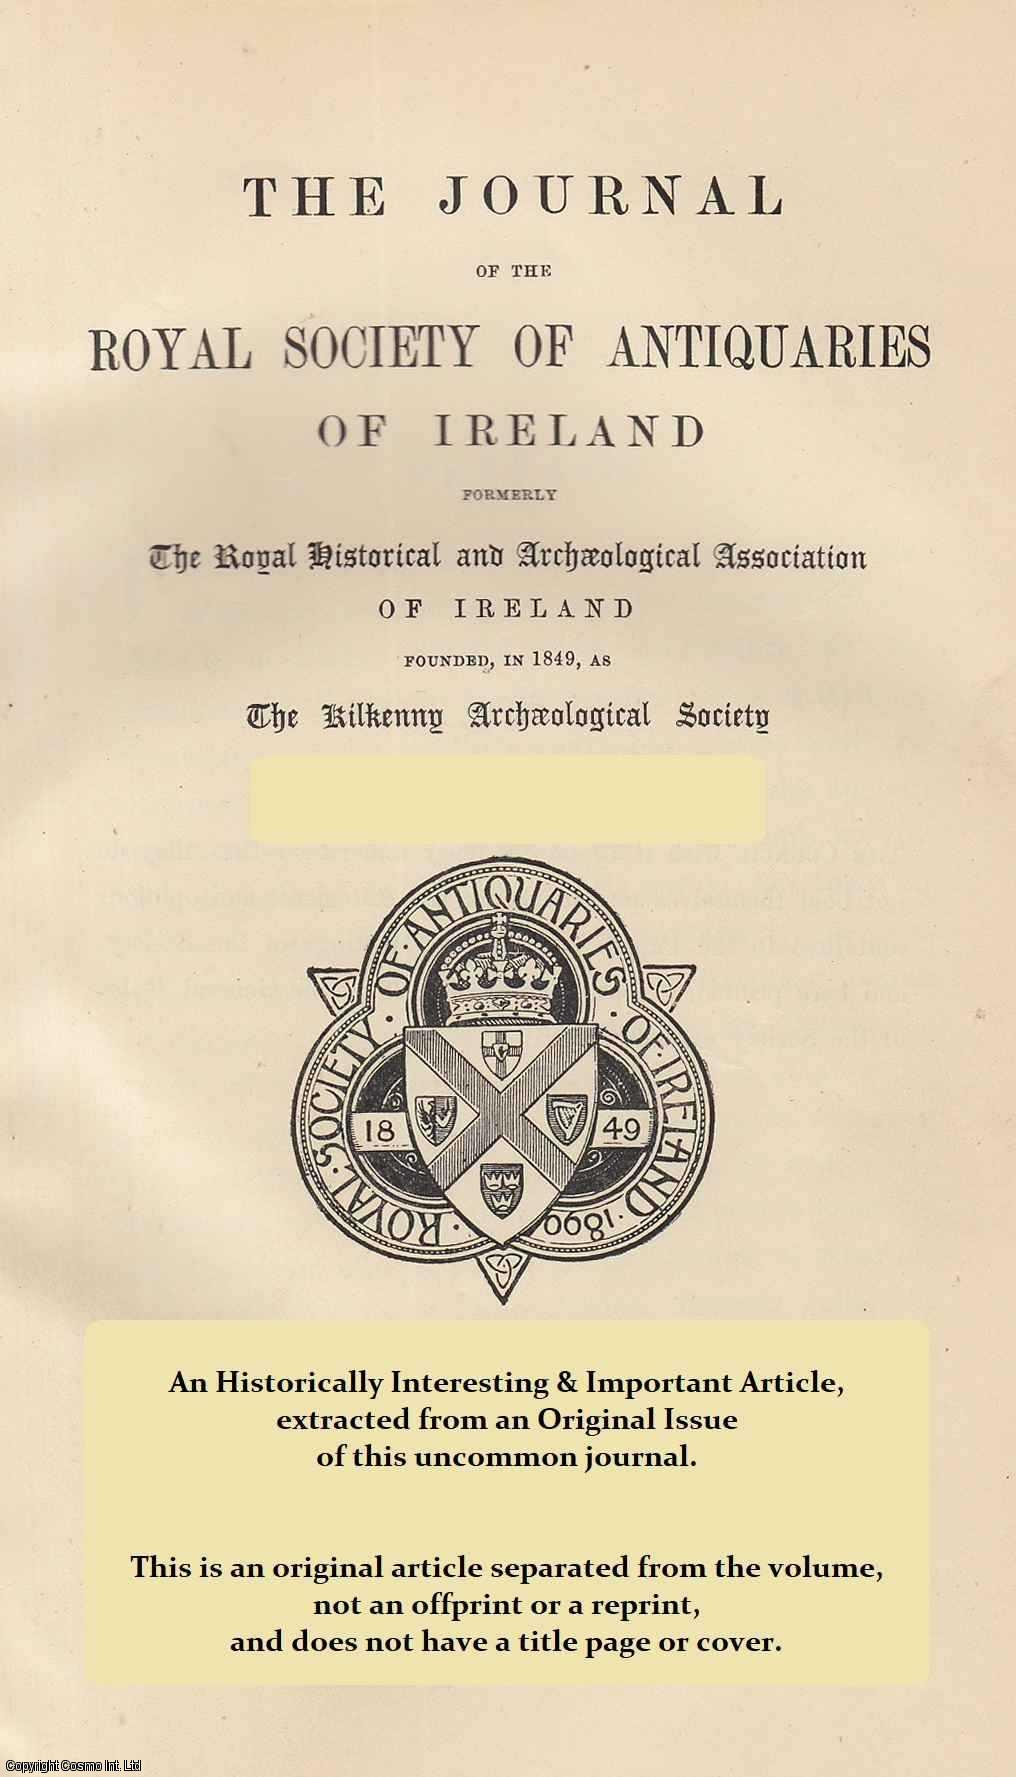 MILLS, JAMES - Peter Lewys: His Work and Workmen. A rare original article from The Journal of the Royal Society of Antiquaries of Ireland, 1901.